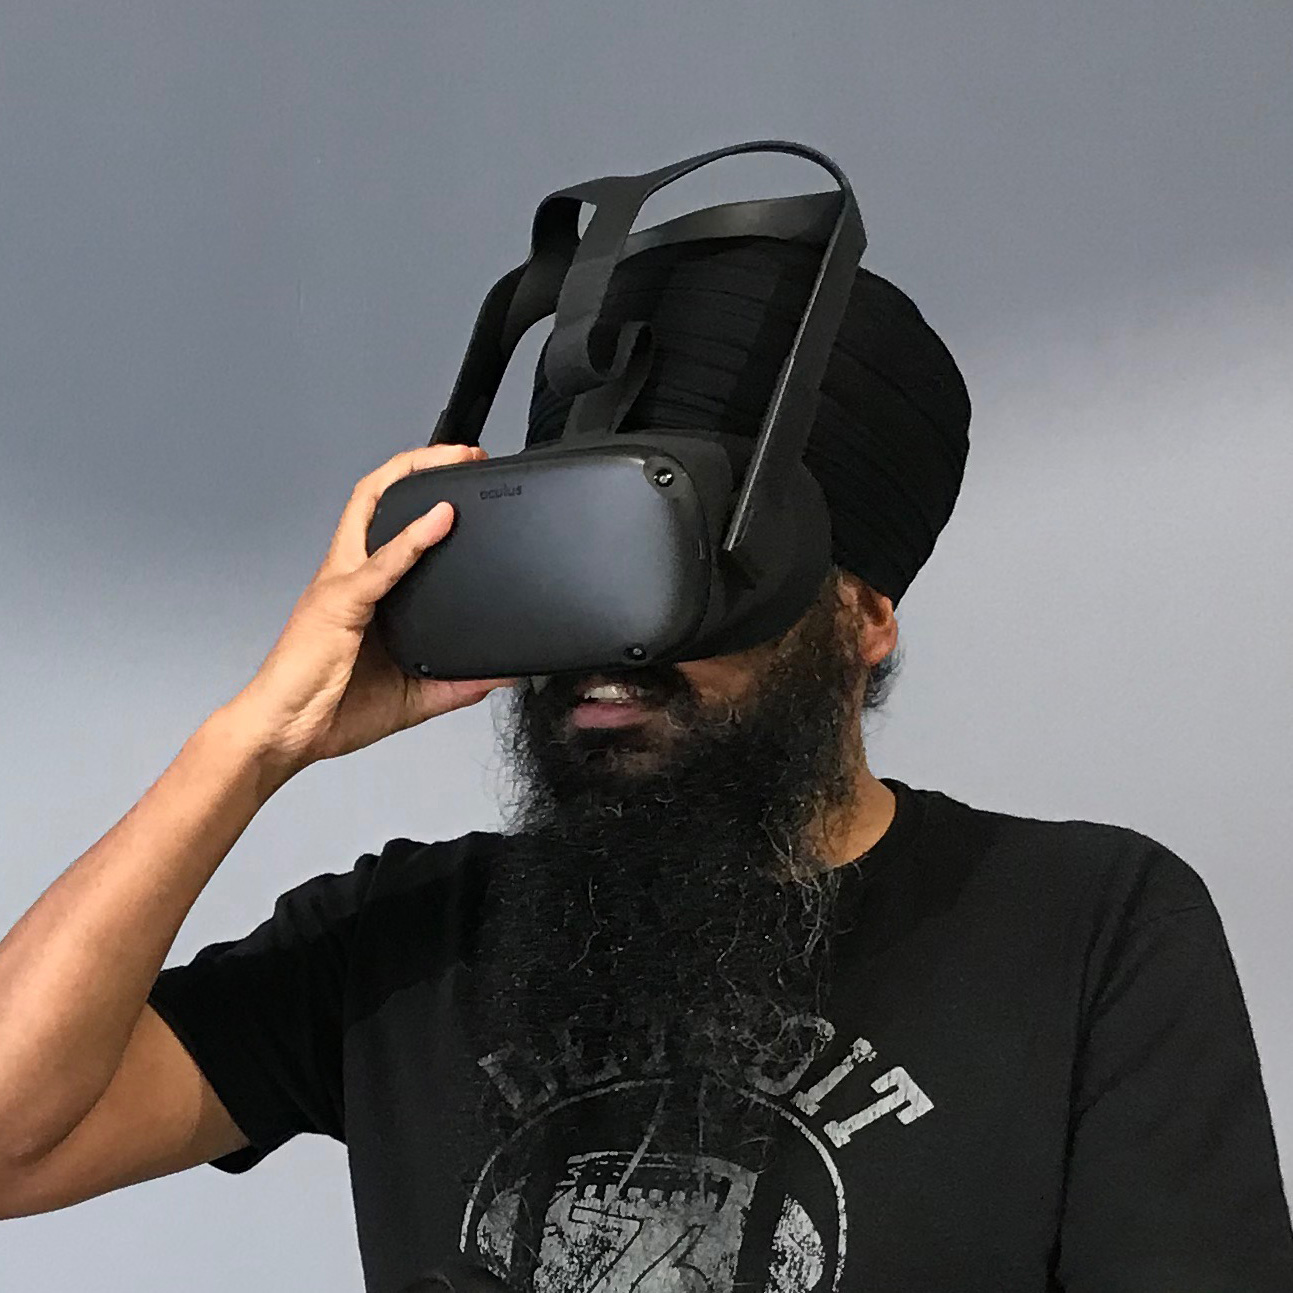 An image of the trainer Taran Singh. He is wearing a VR headset, has a beard and is wearing a turban